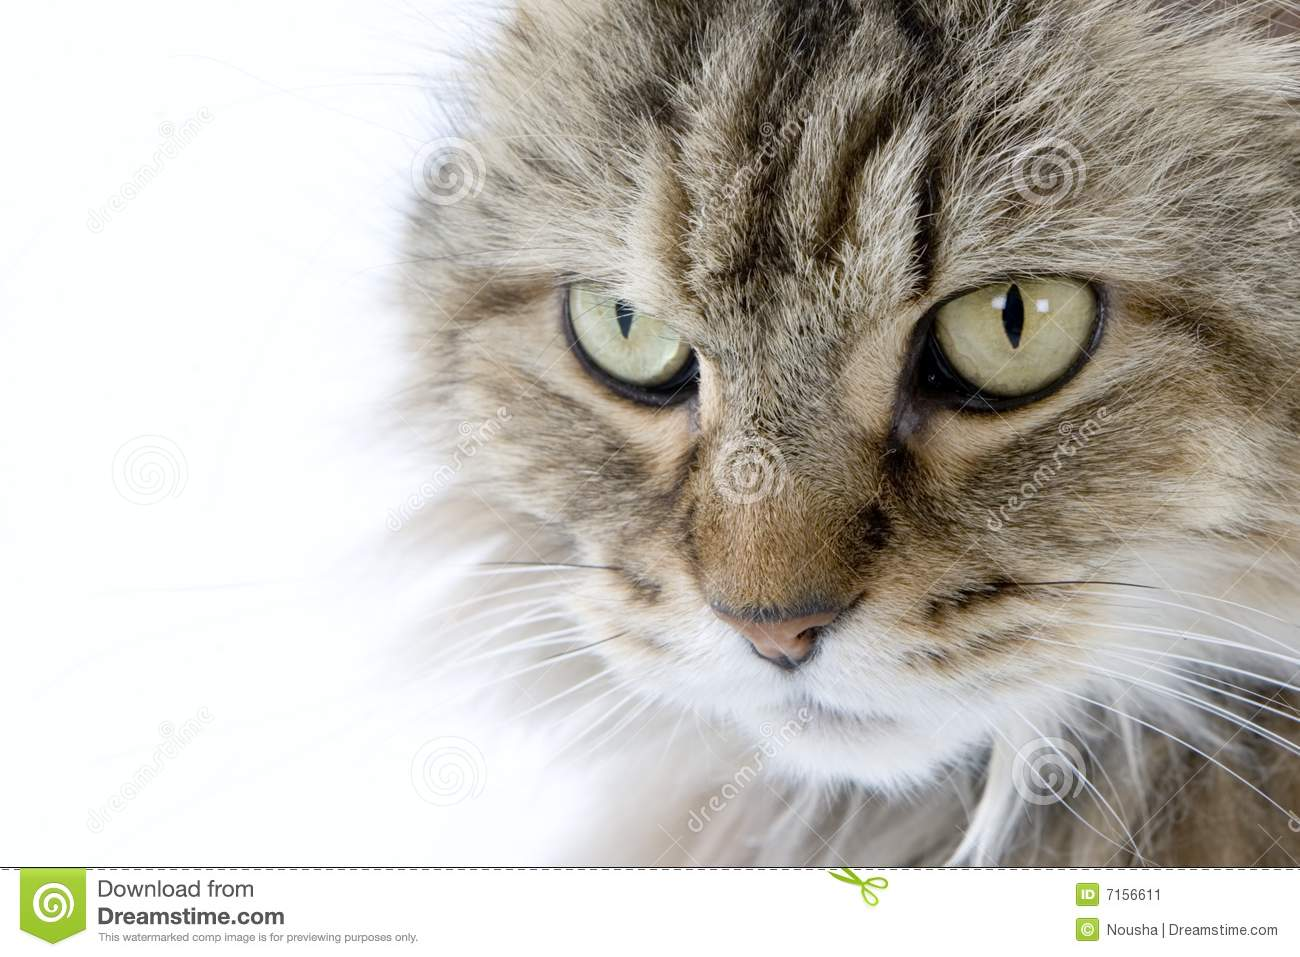 Ragamuffin Stock Image - Image: 7156611 Gray And White Cat With Green Eyes